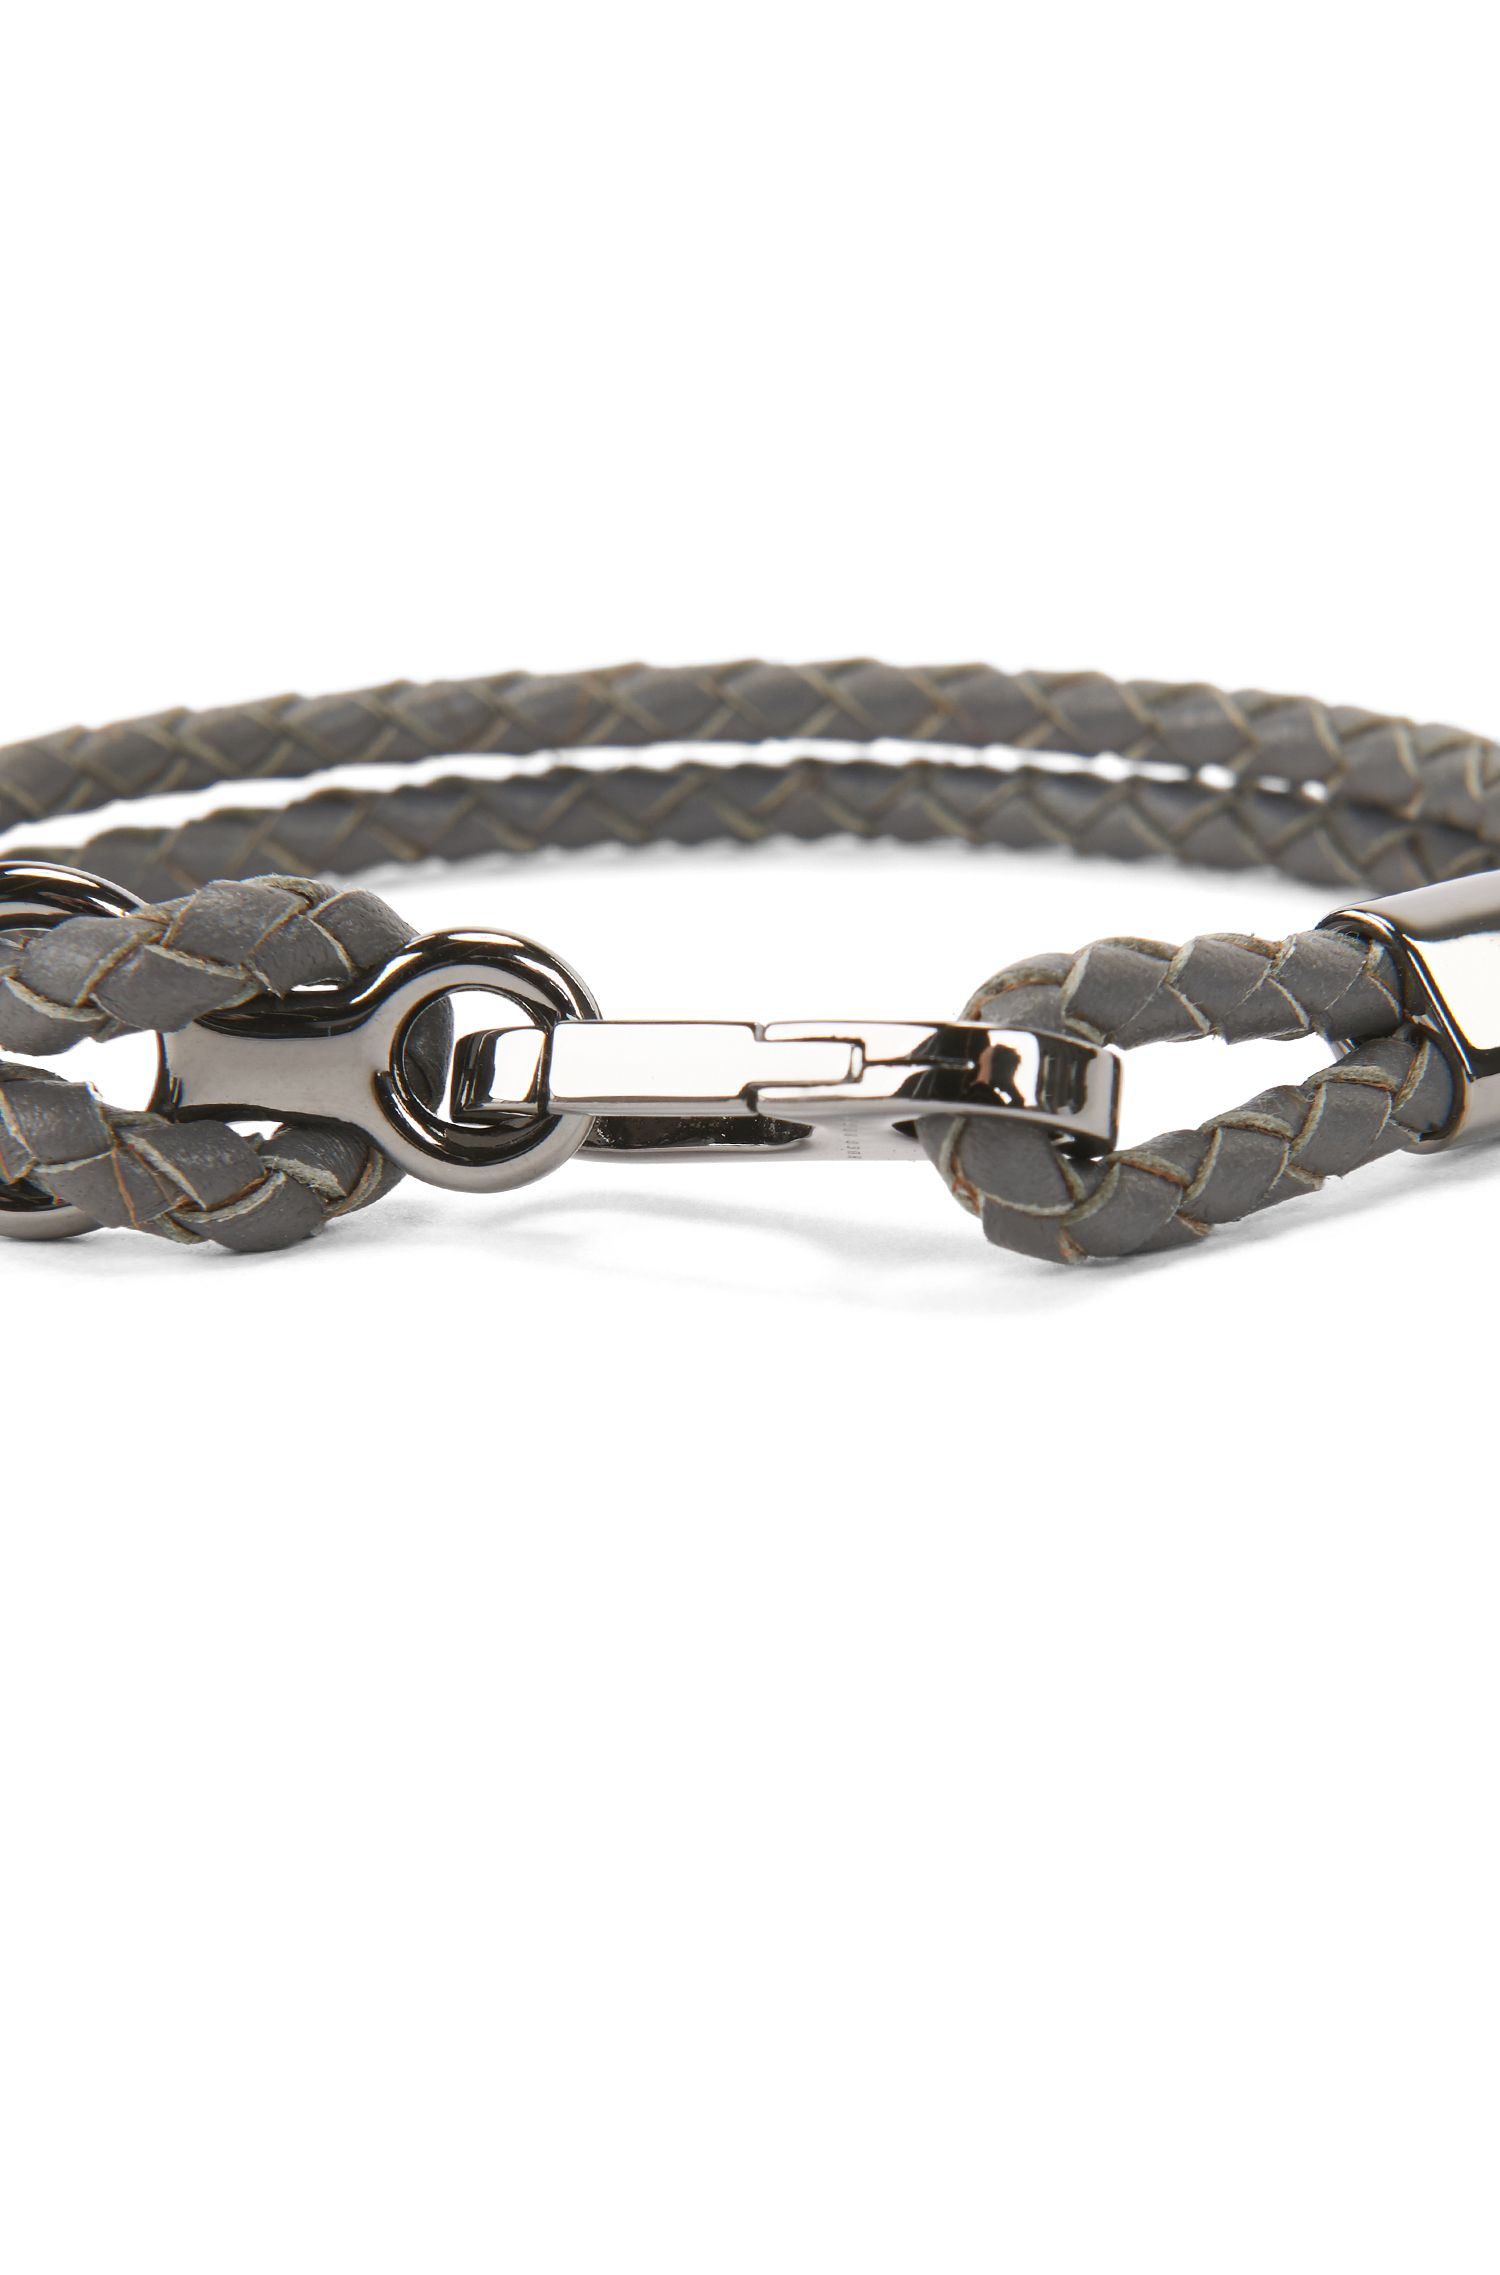 Double braided calf-leather bracelet with carabiner closure, Grey